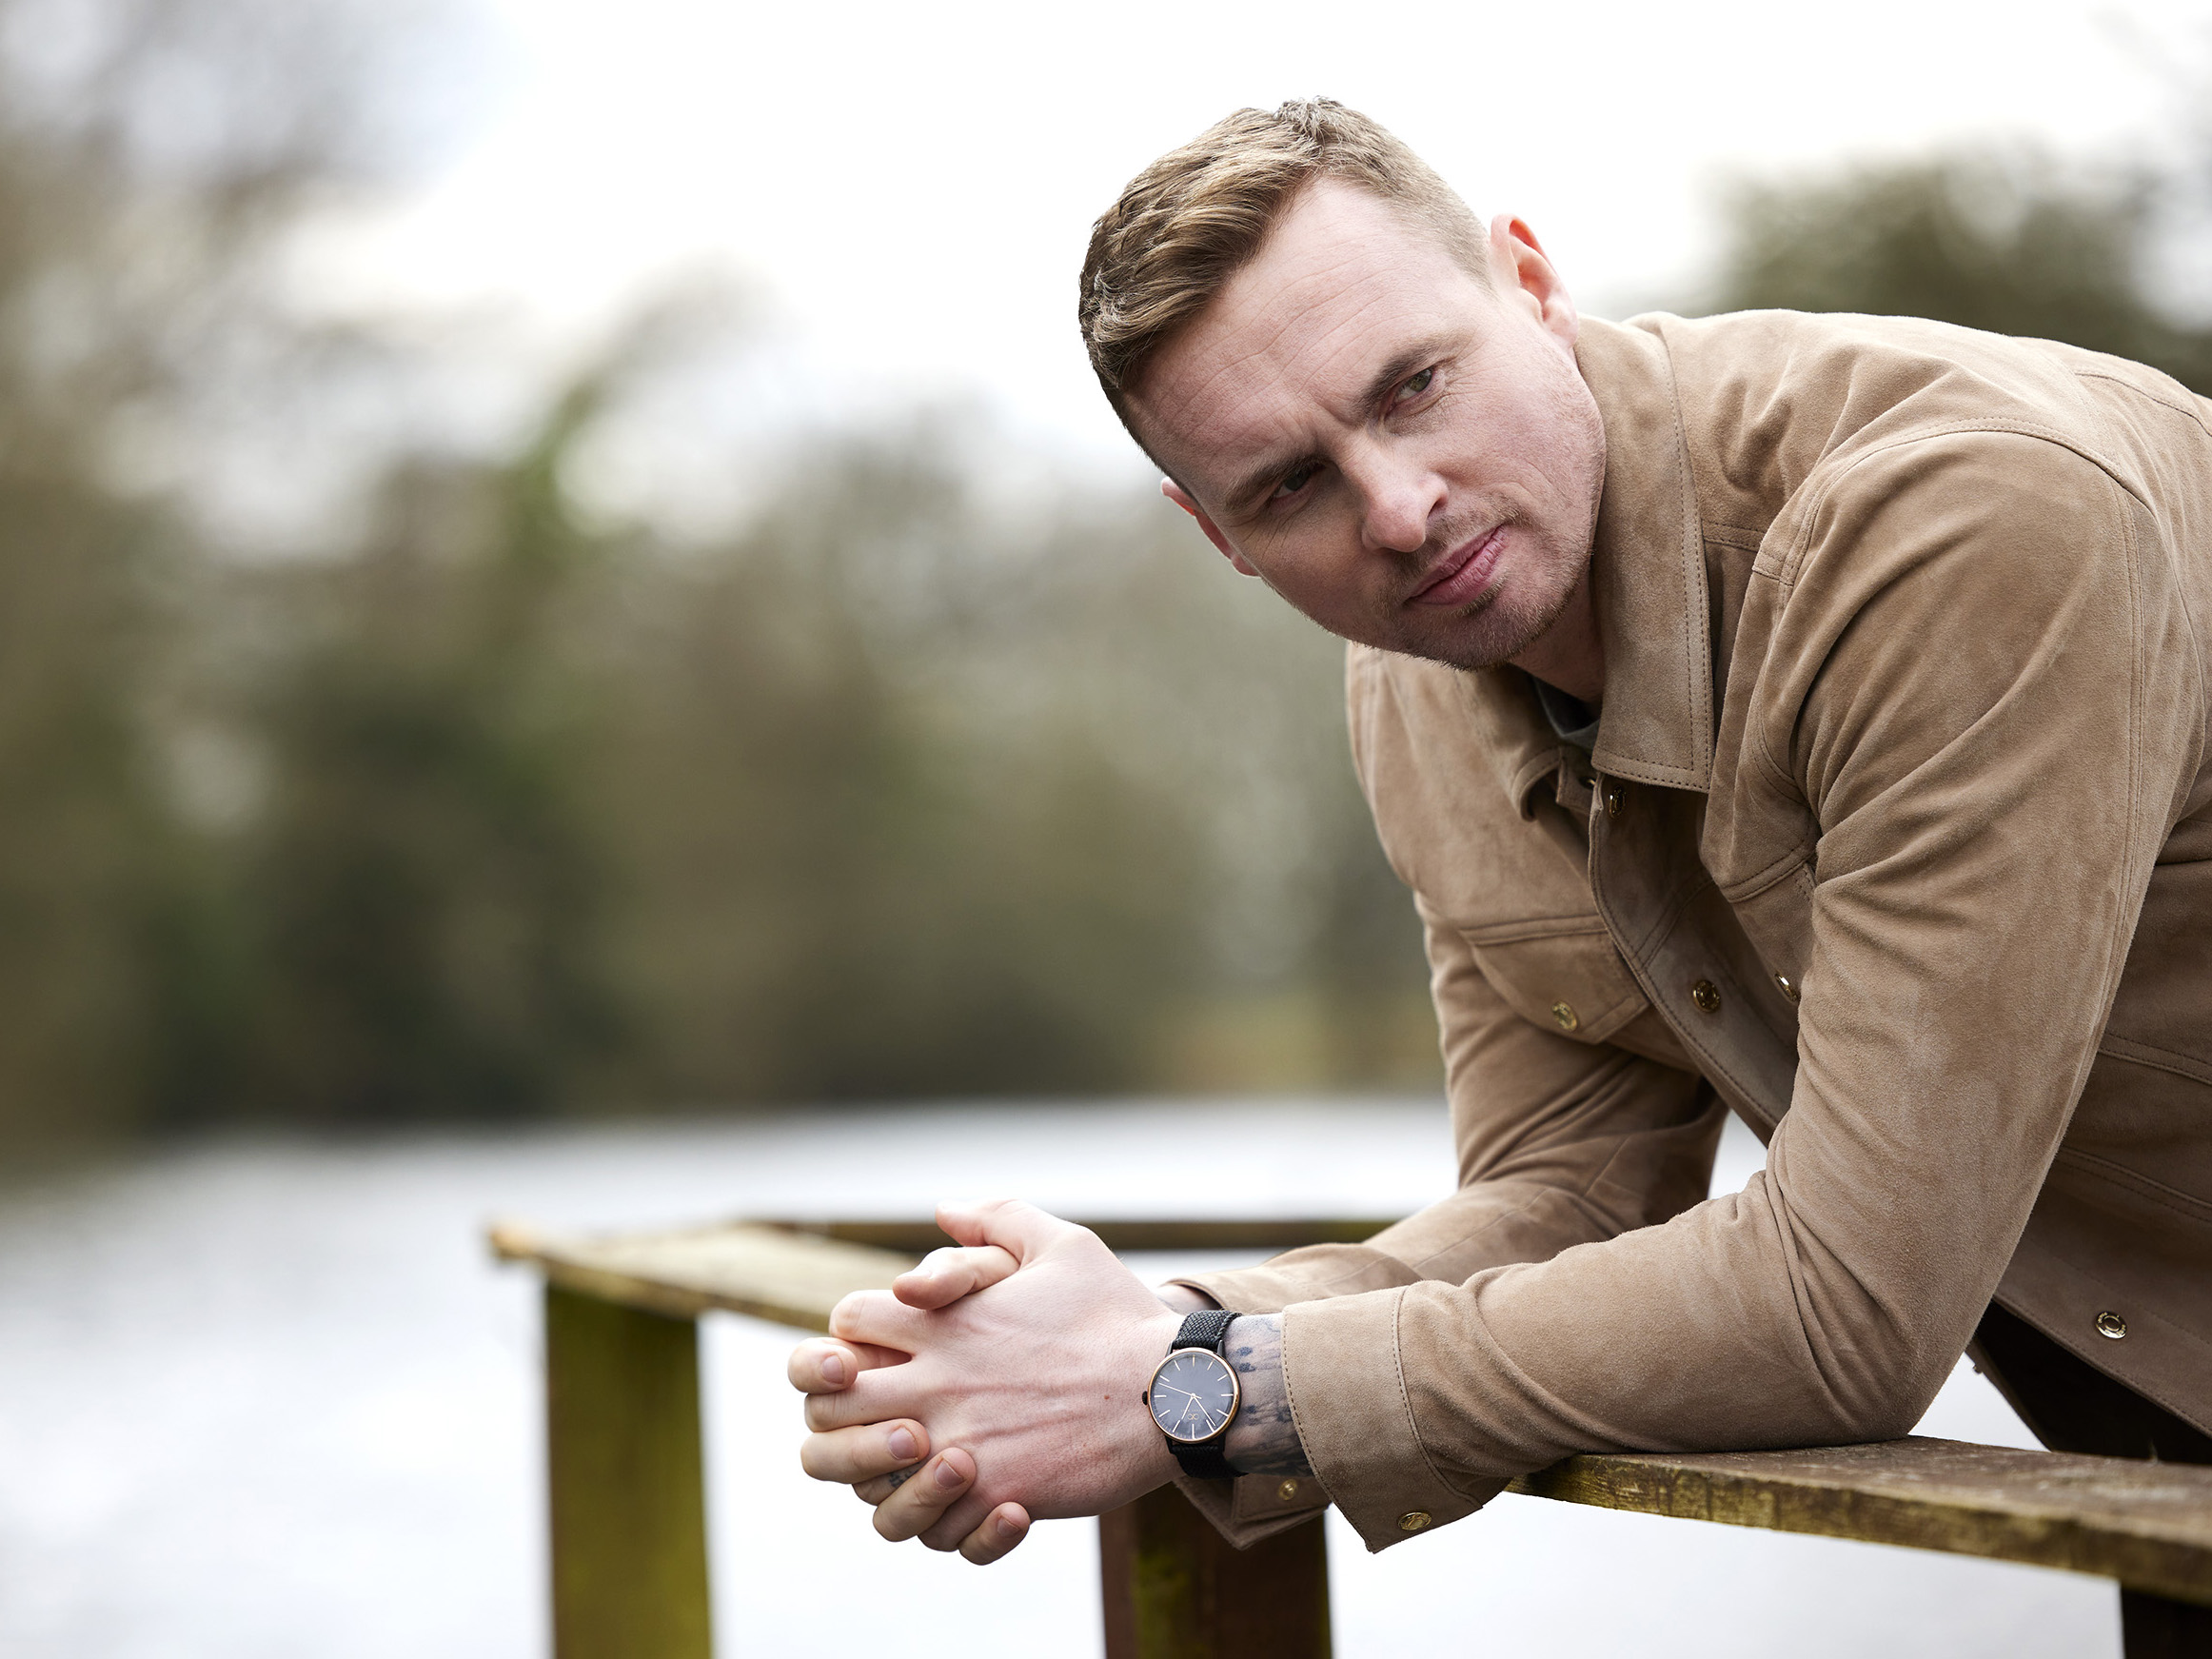 David Stockdale leaning on a wooden barrier by a lake